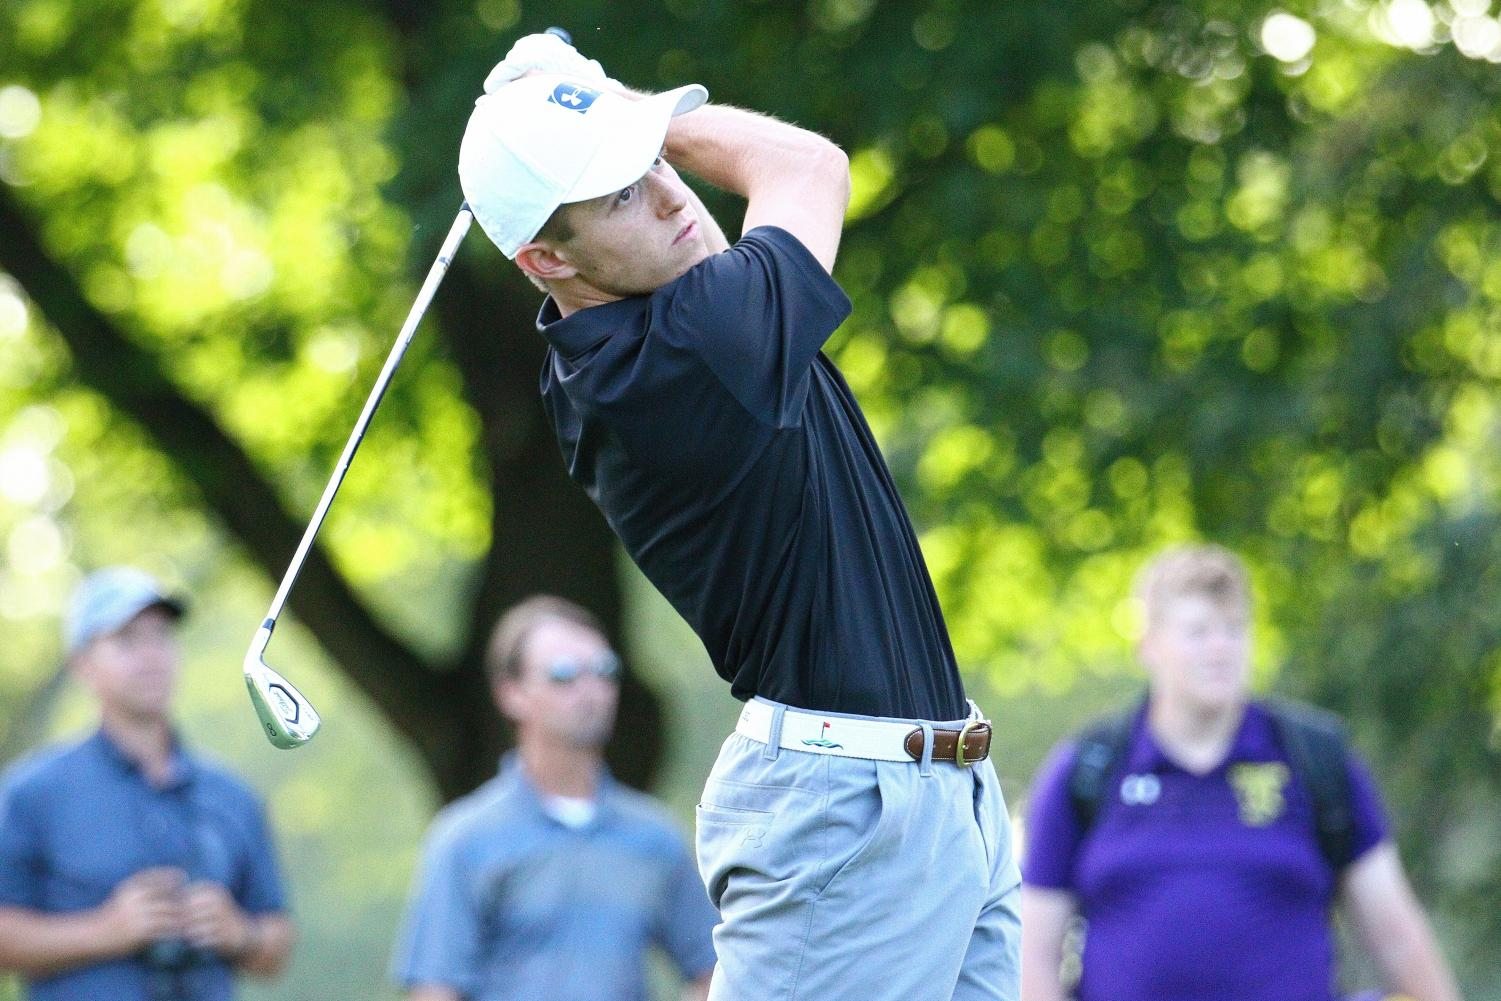 Truman Keppy swings his golf club during the first boys golf game of the season against Wauconda on August 15.